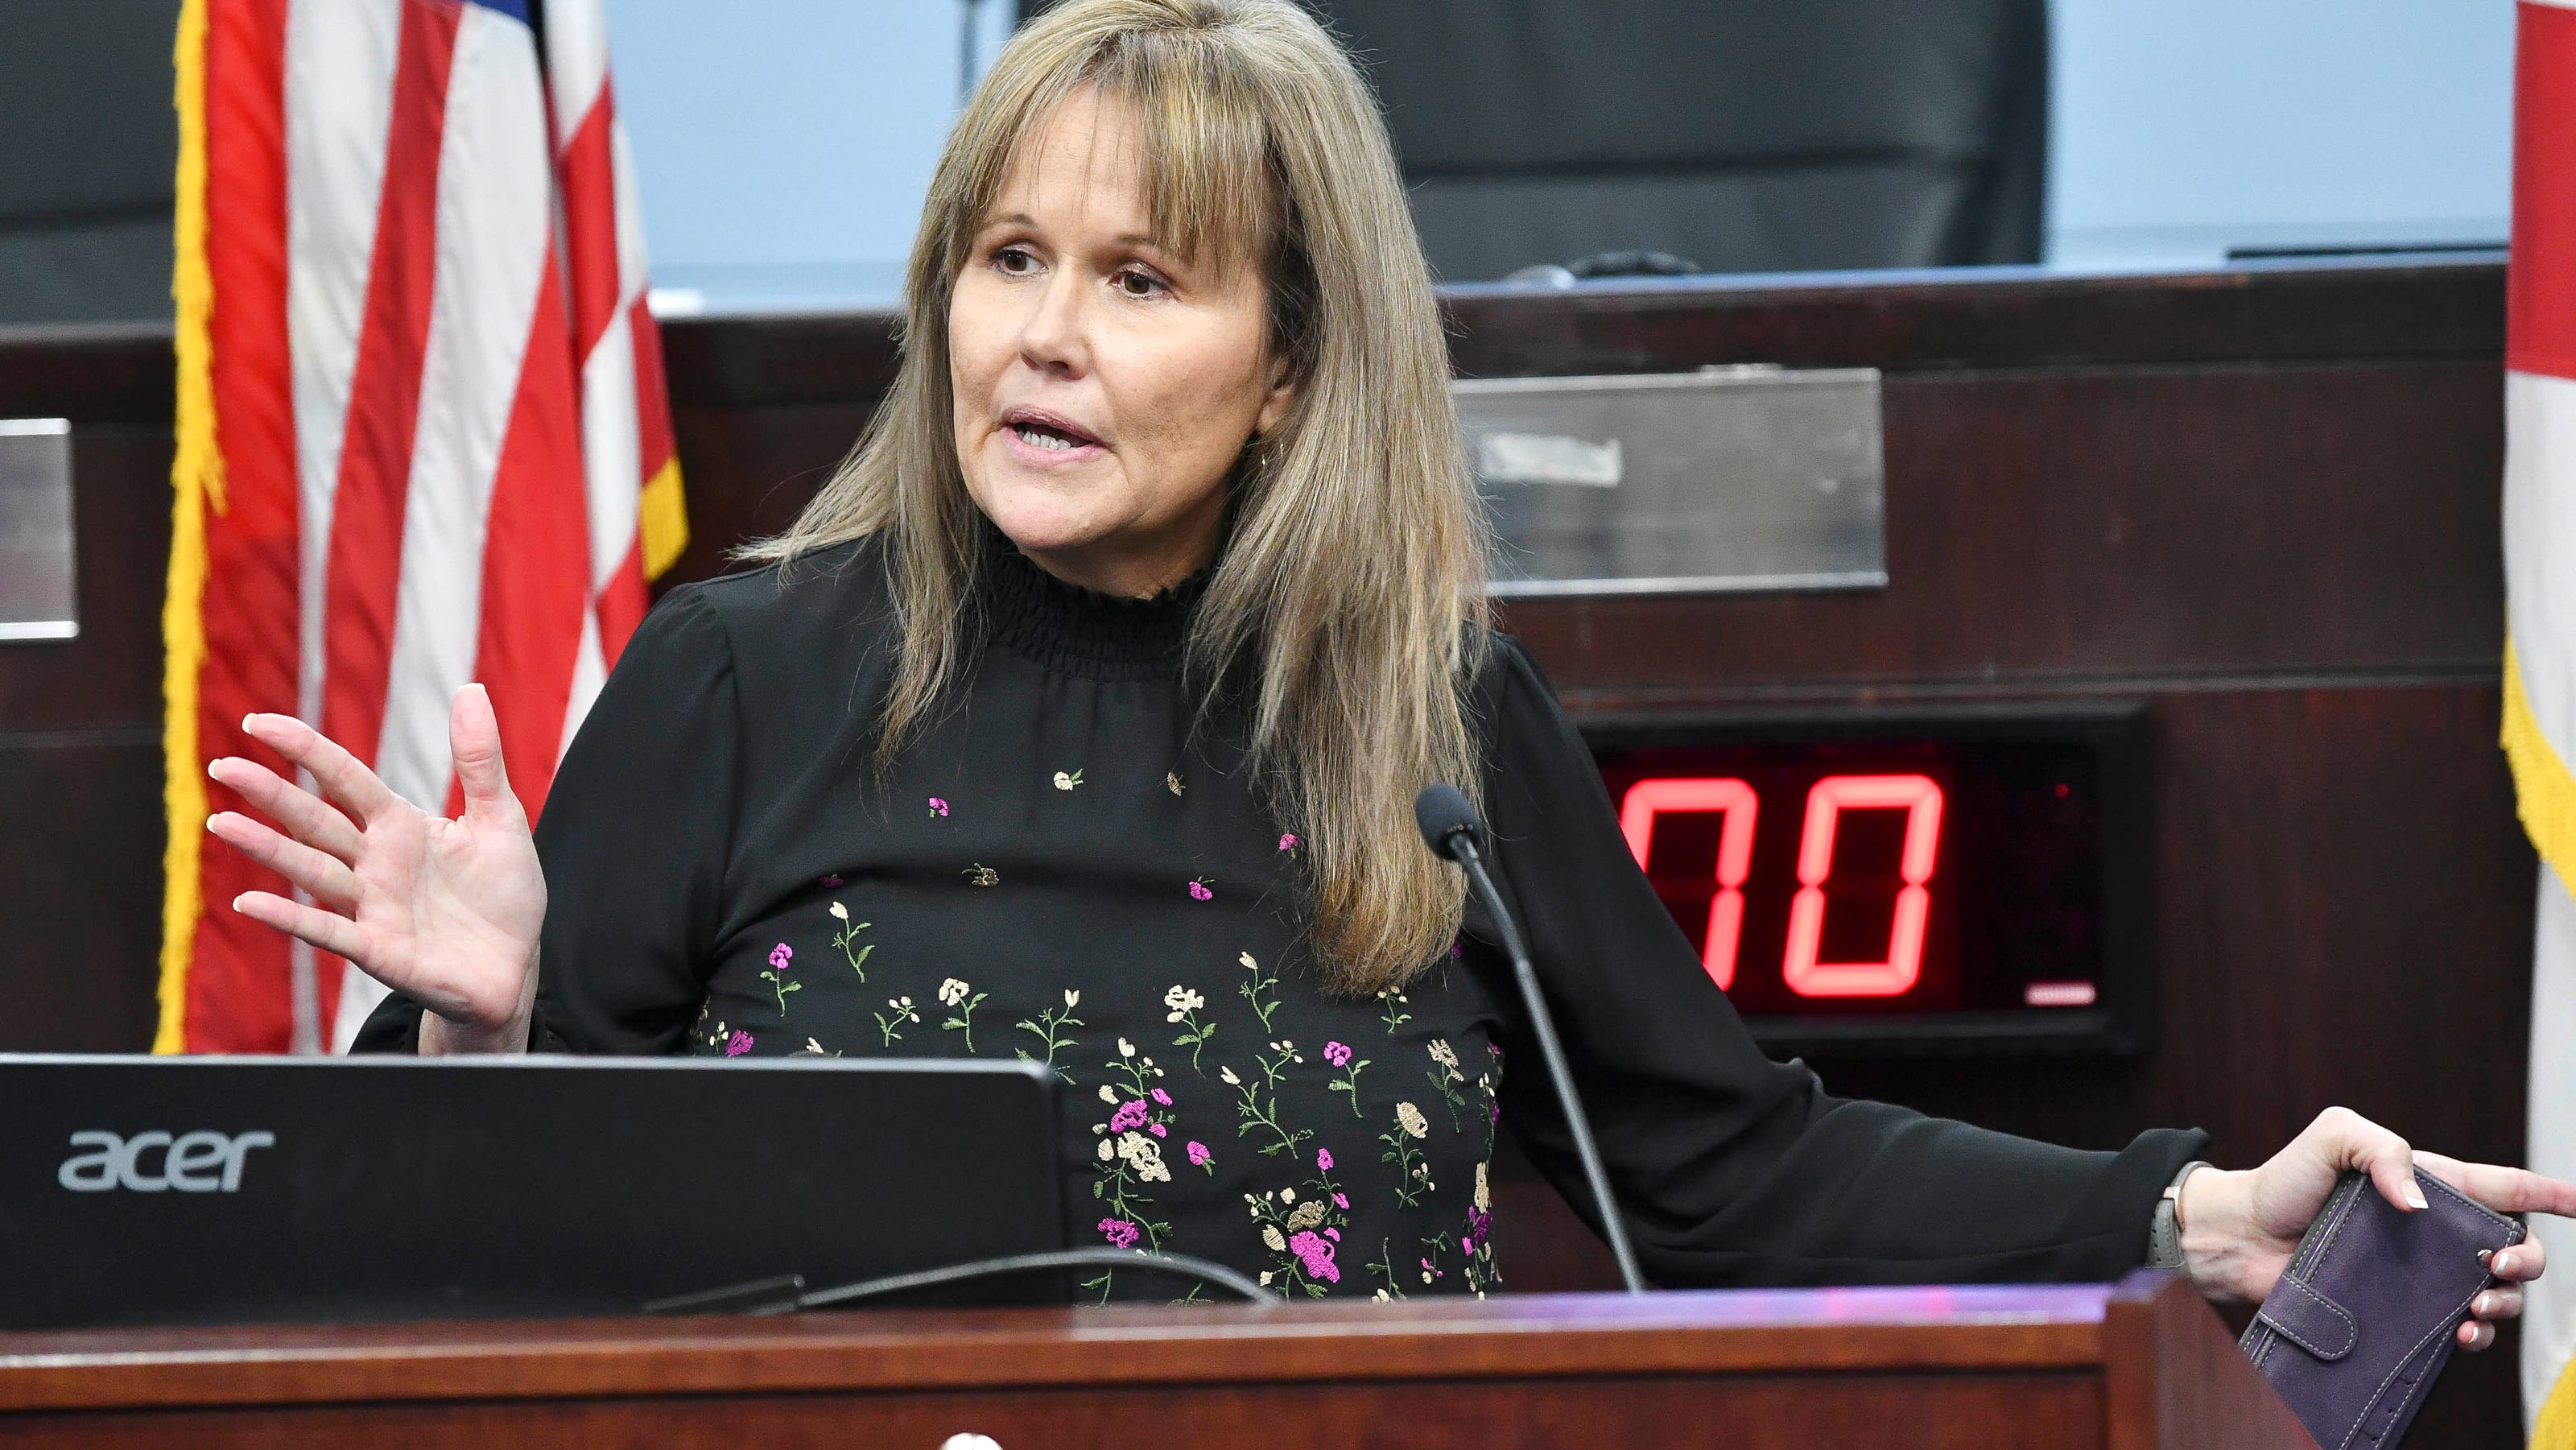 County leaders seem to have accidentally approved removing fluoride from Mims water - Florida Today